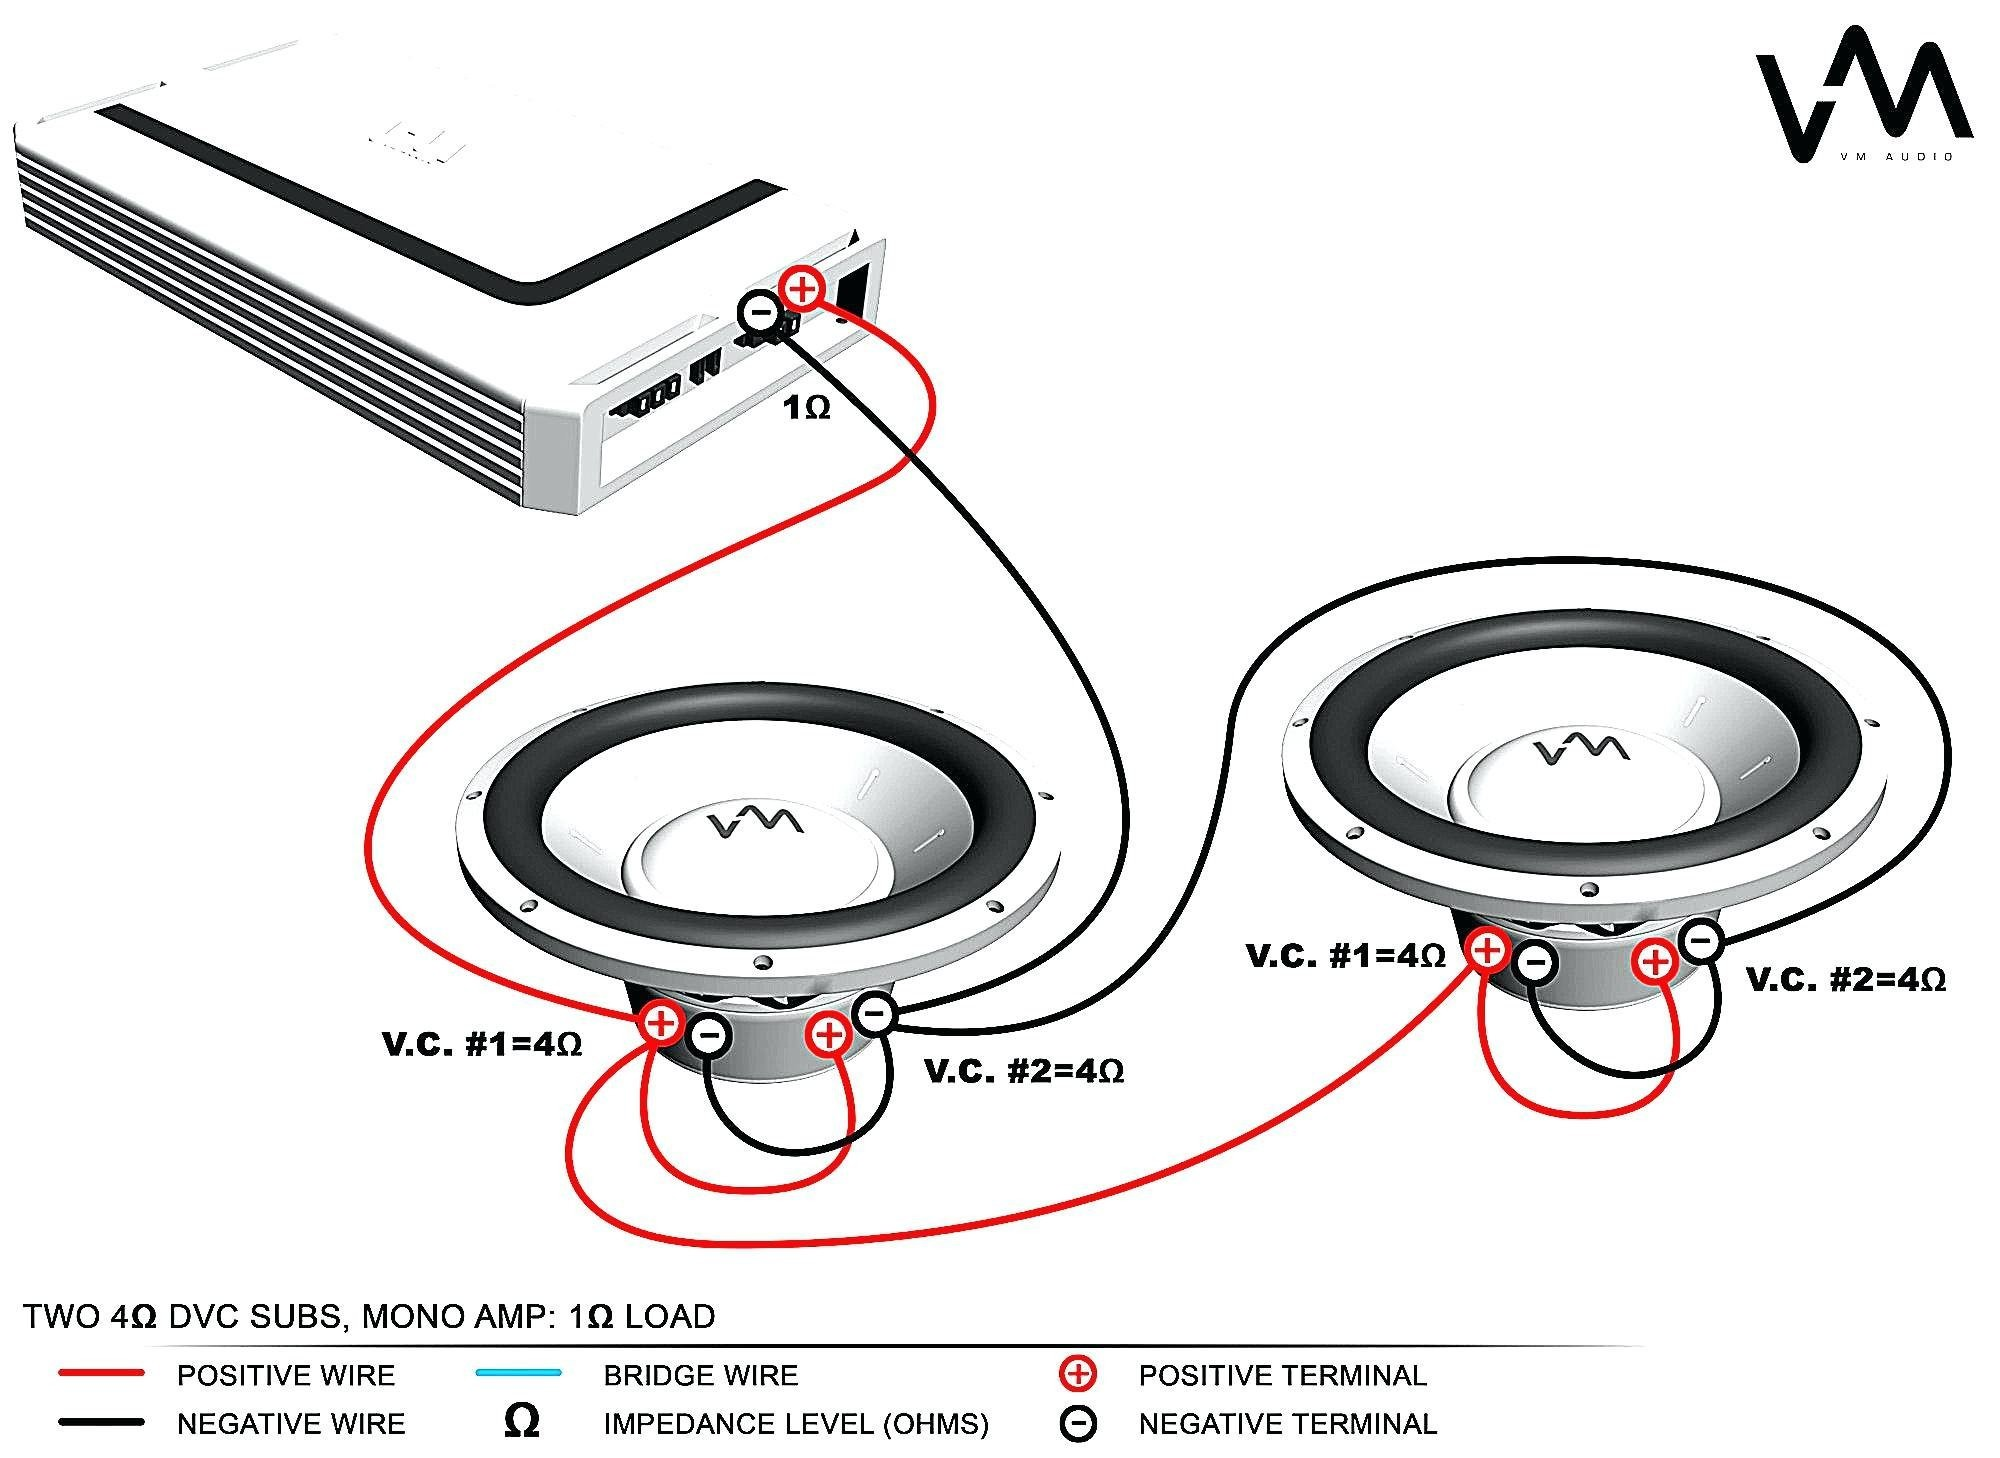 Wiring Diagram For Two Dvc Subs